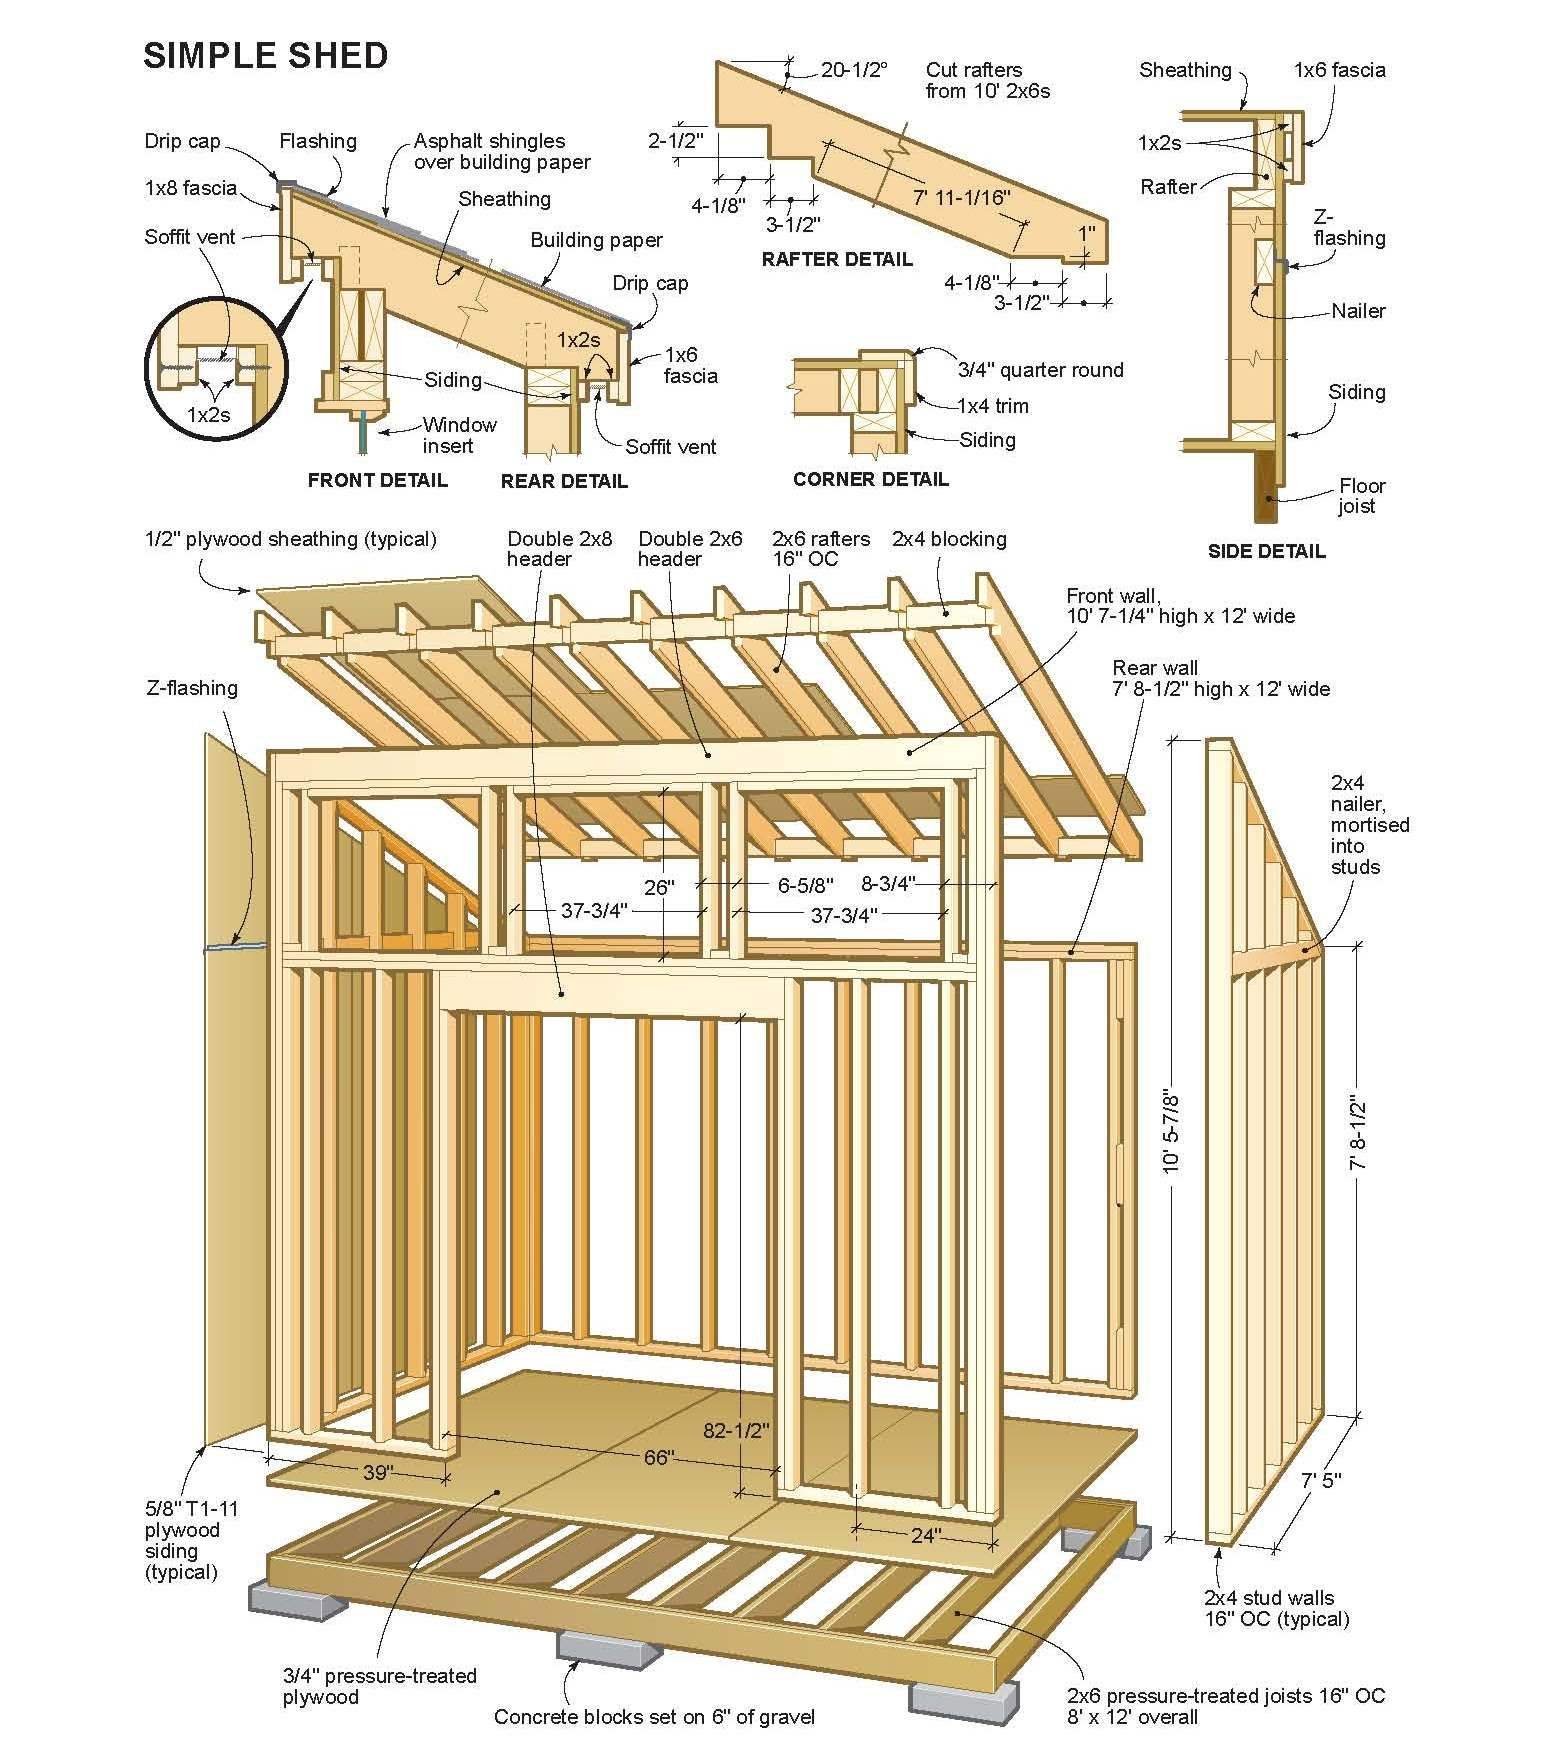 Pin By Greg Gent On Projects Pinterest Shed Plans Diy Shed